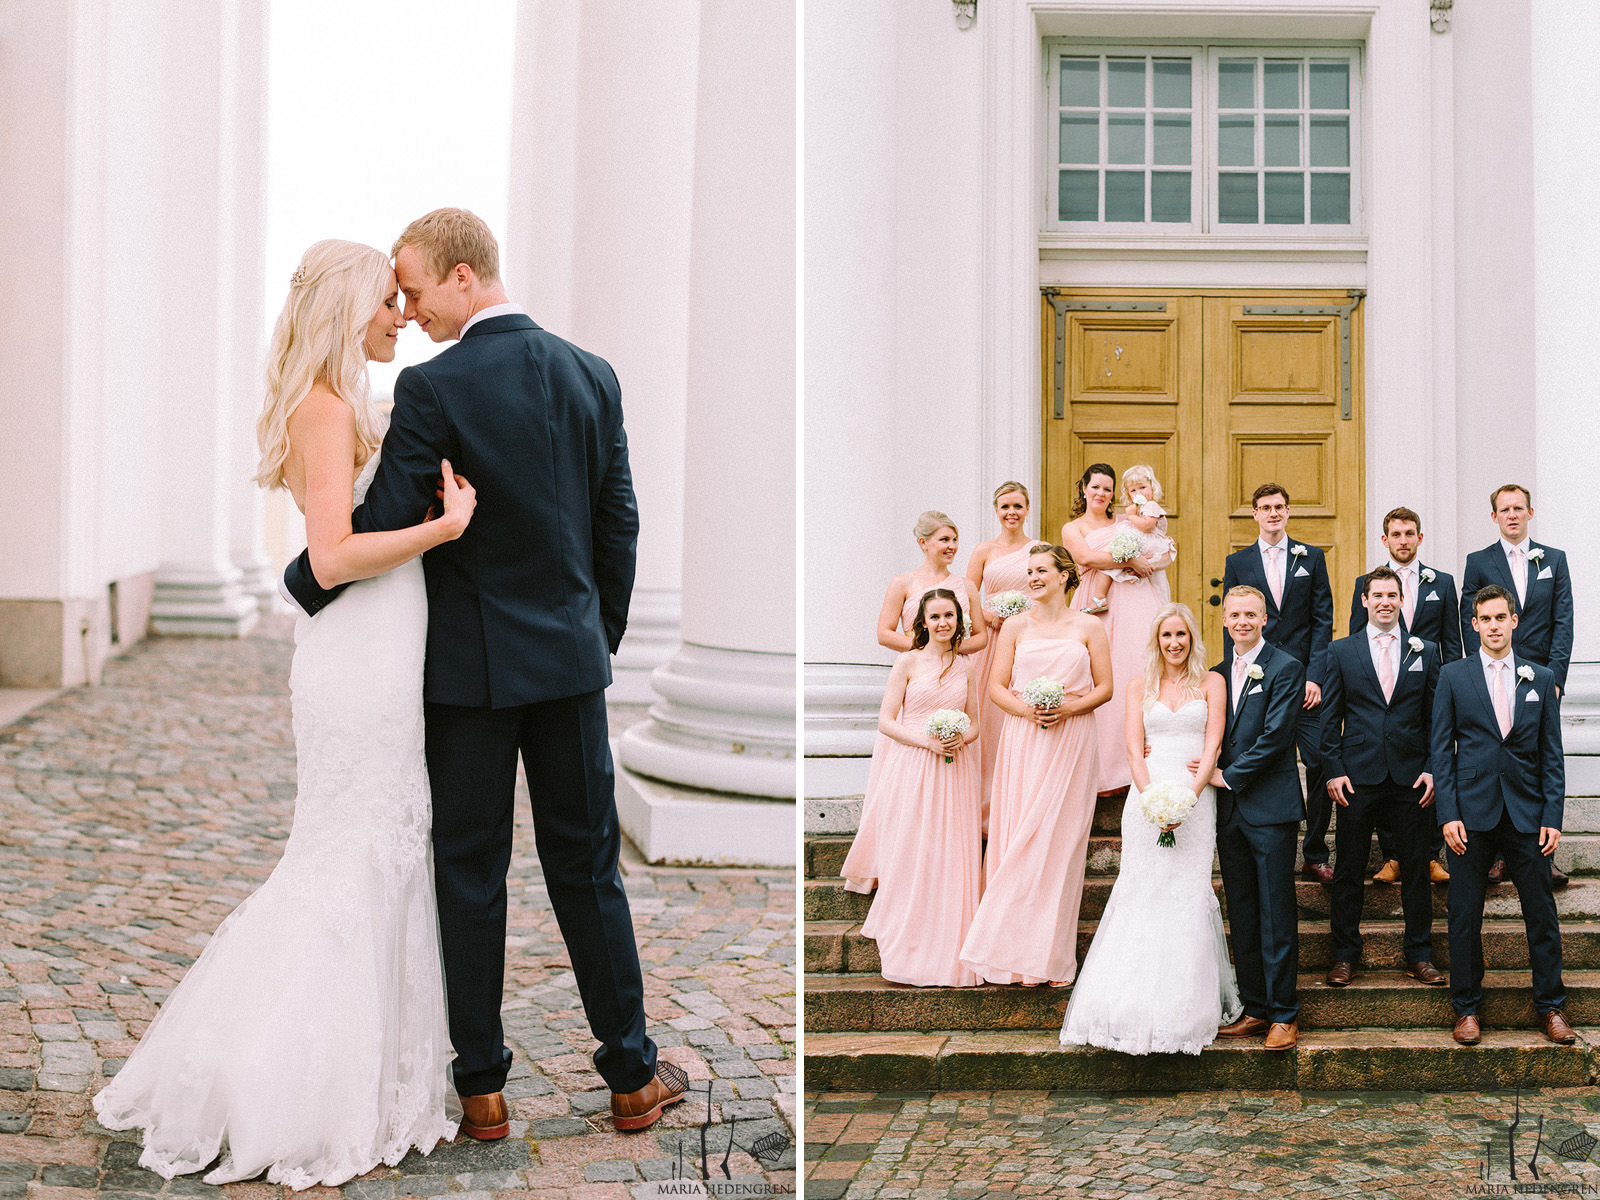 Helsinki cathedral wedding photos